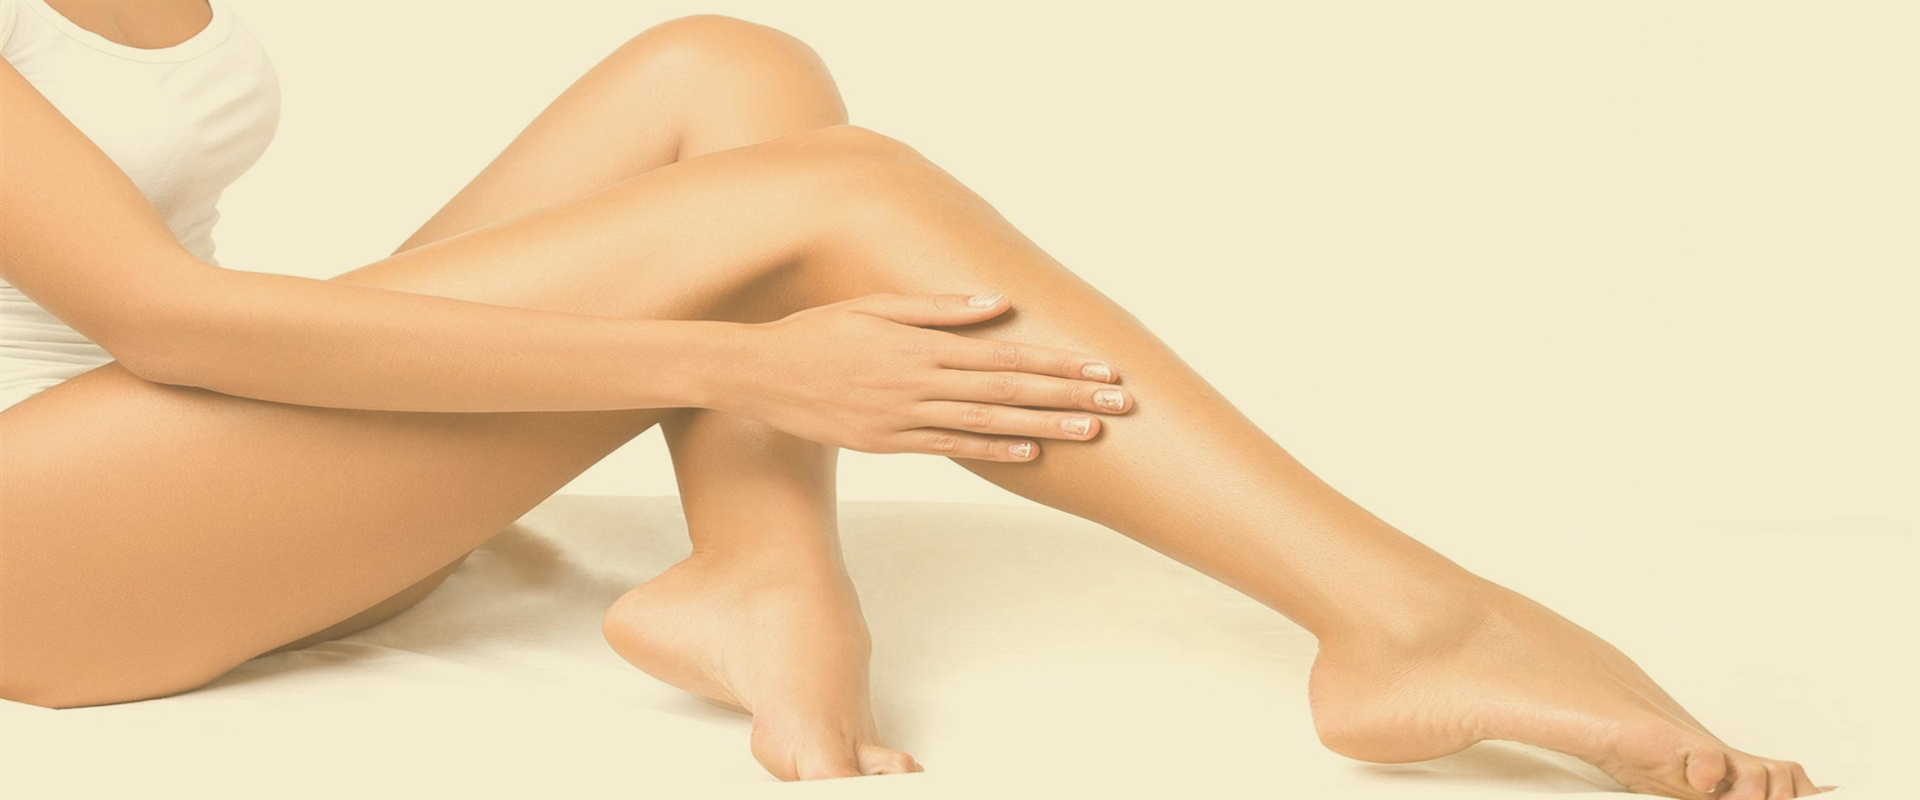 At Maria Beauty Clinic, our mission is to provide affordable all services